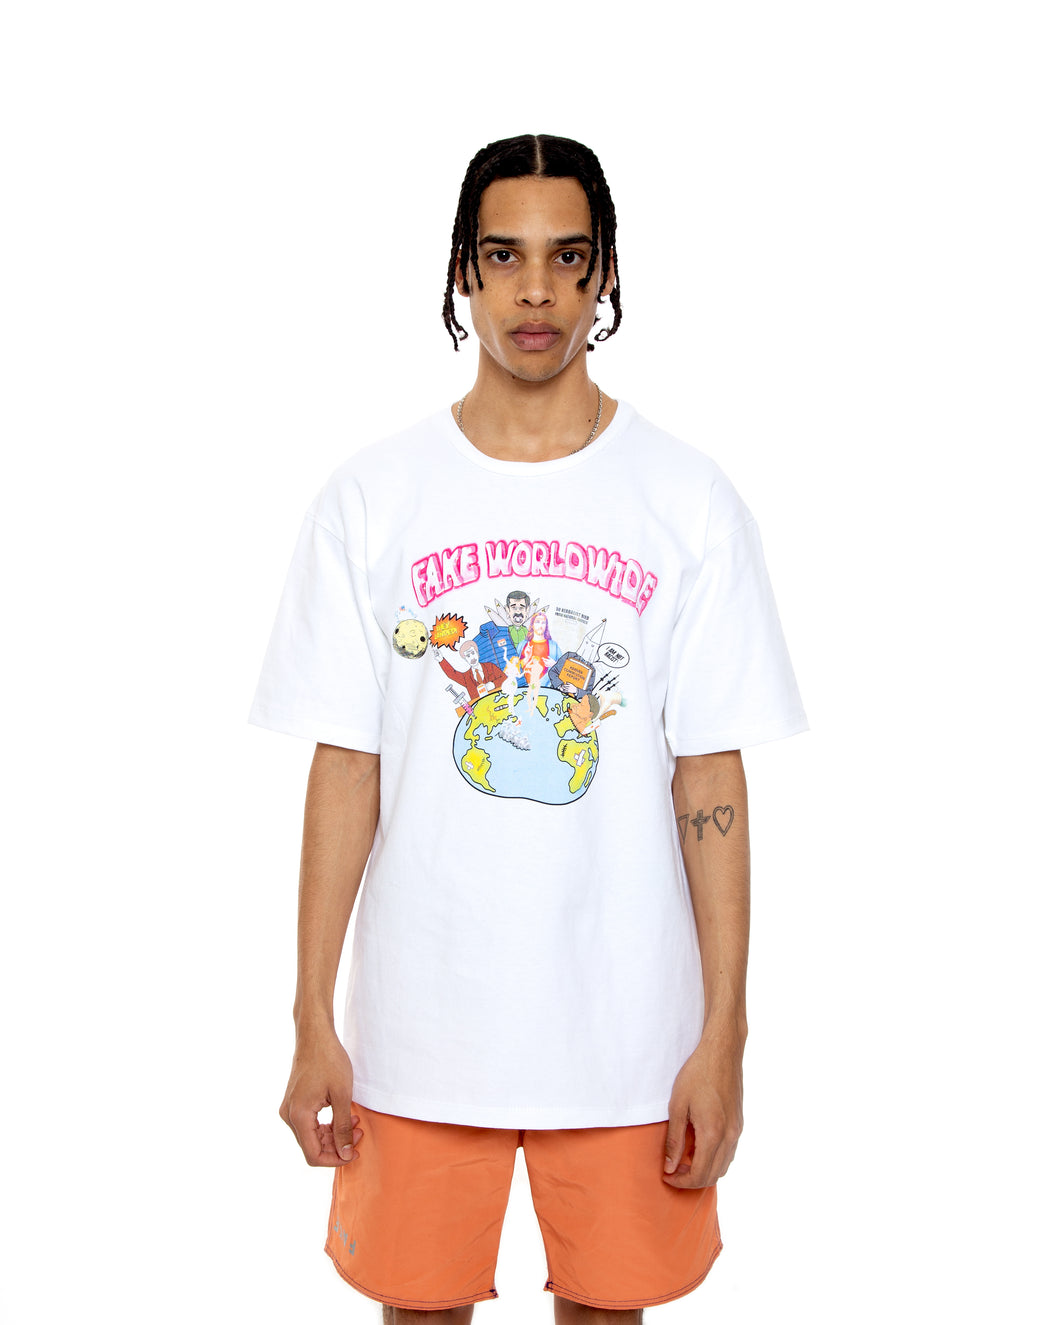 Fake Worldwide White Short-Sleeve Shirt